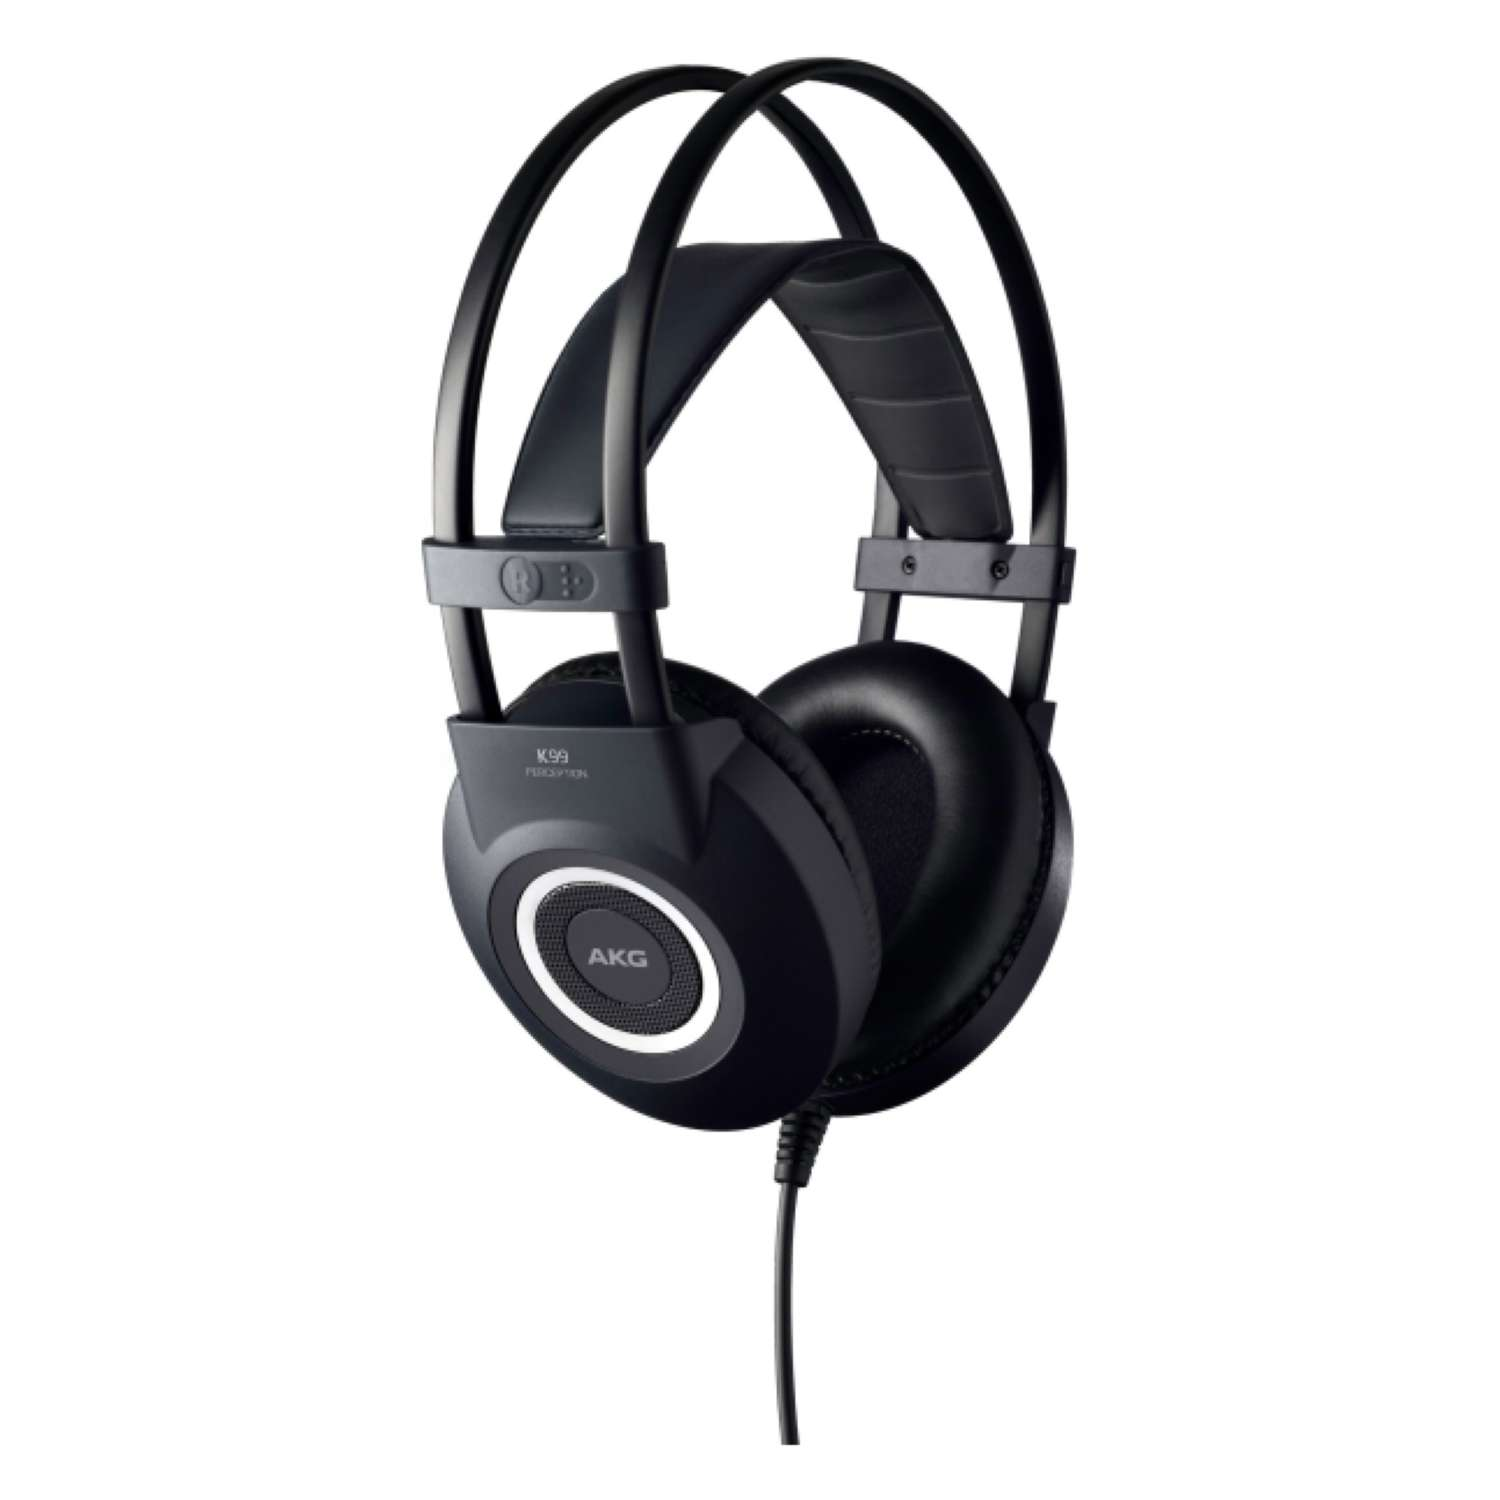 AKG K99 Natural Sound Stereo Headphones 1